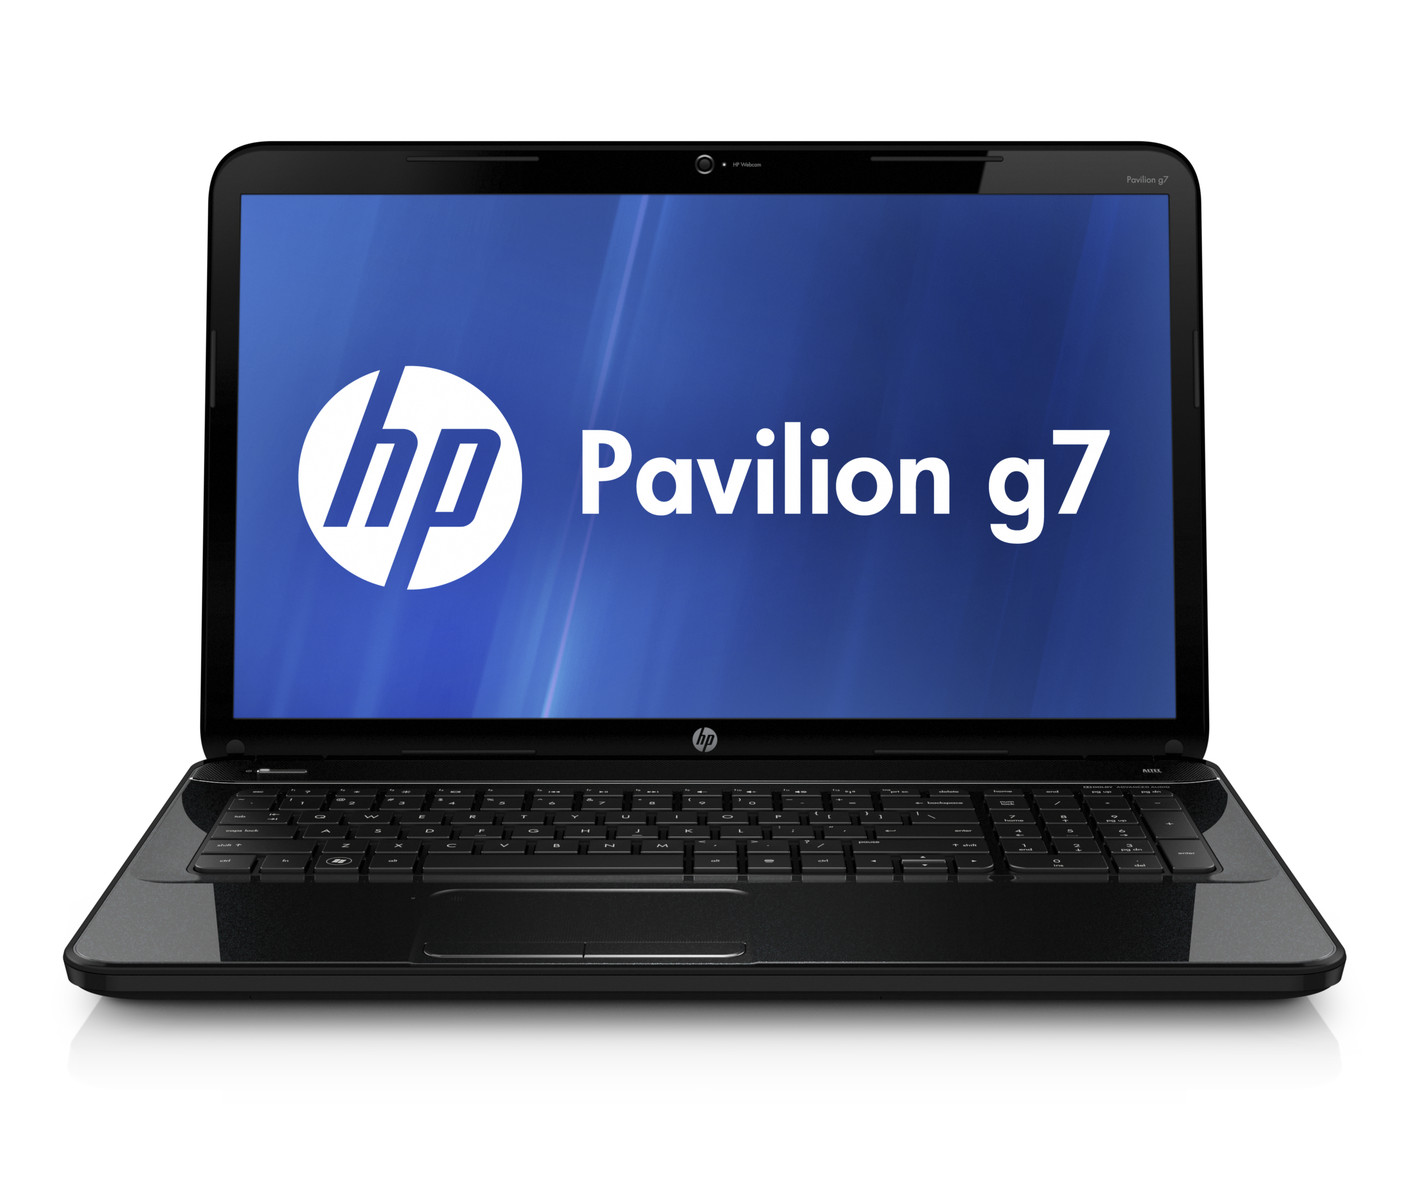 hp pavilion g6 l fter reinigen computer reinigung reparieren. Black Bedroom Furniture Sets. Home Design Ideas